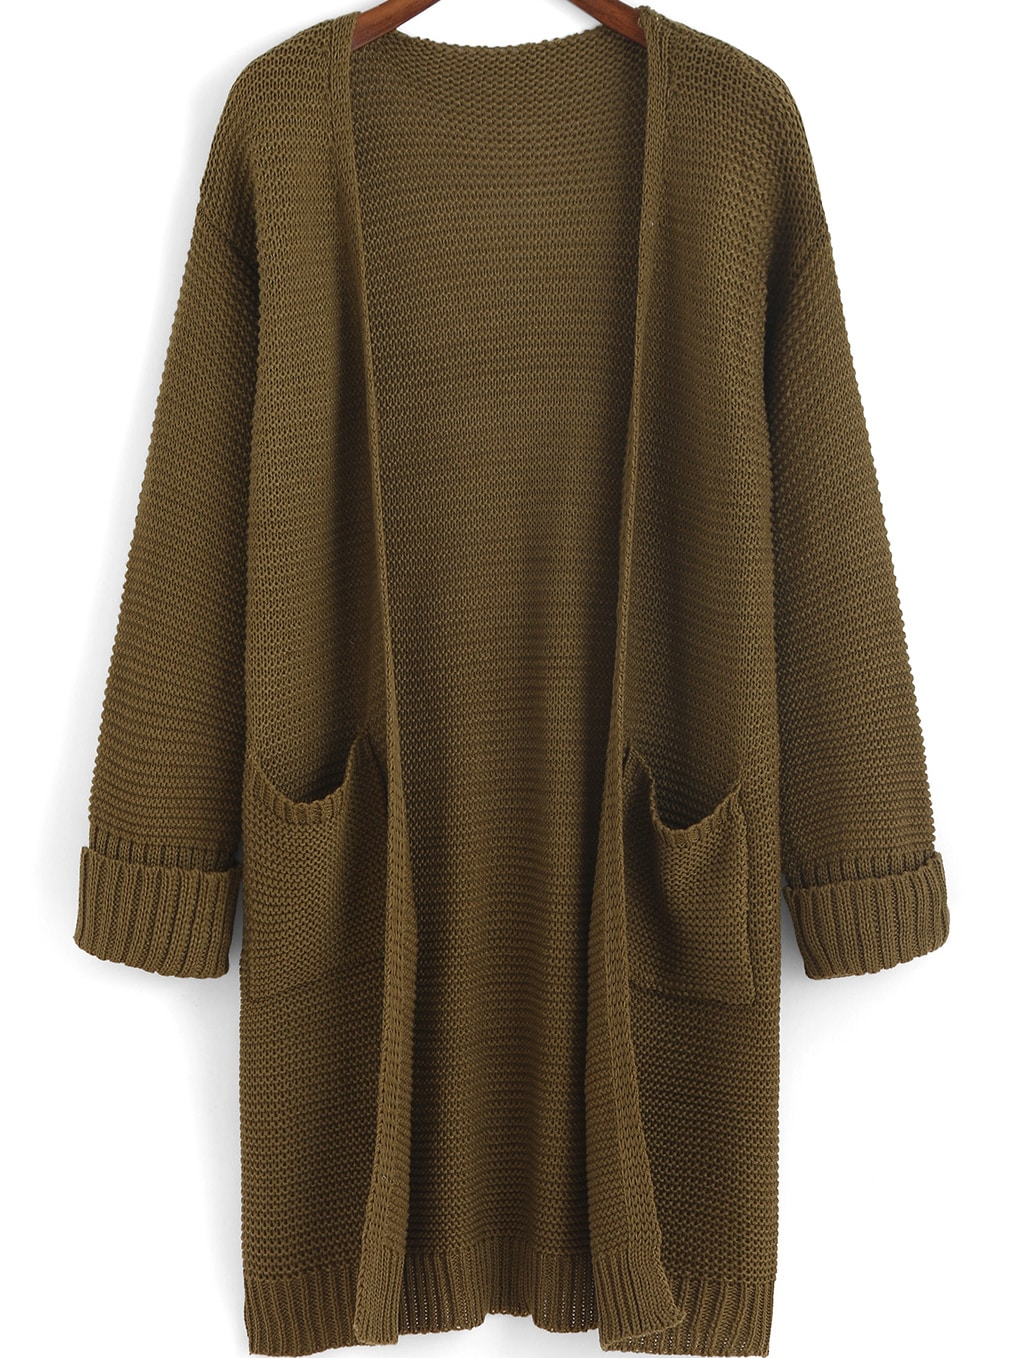 Flange Pockets Knit Army Green Cardigan